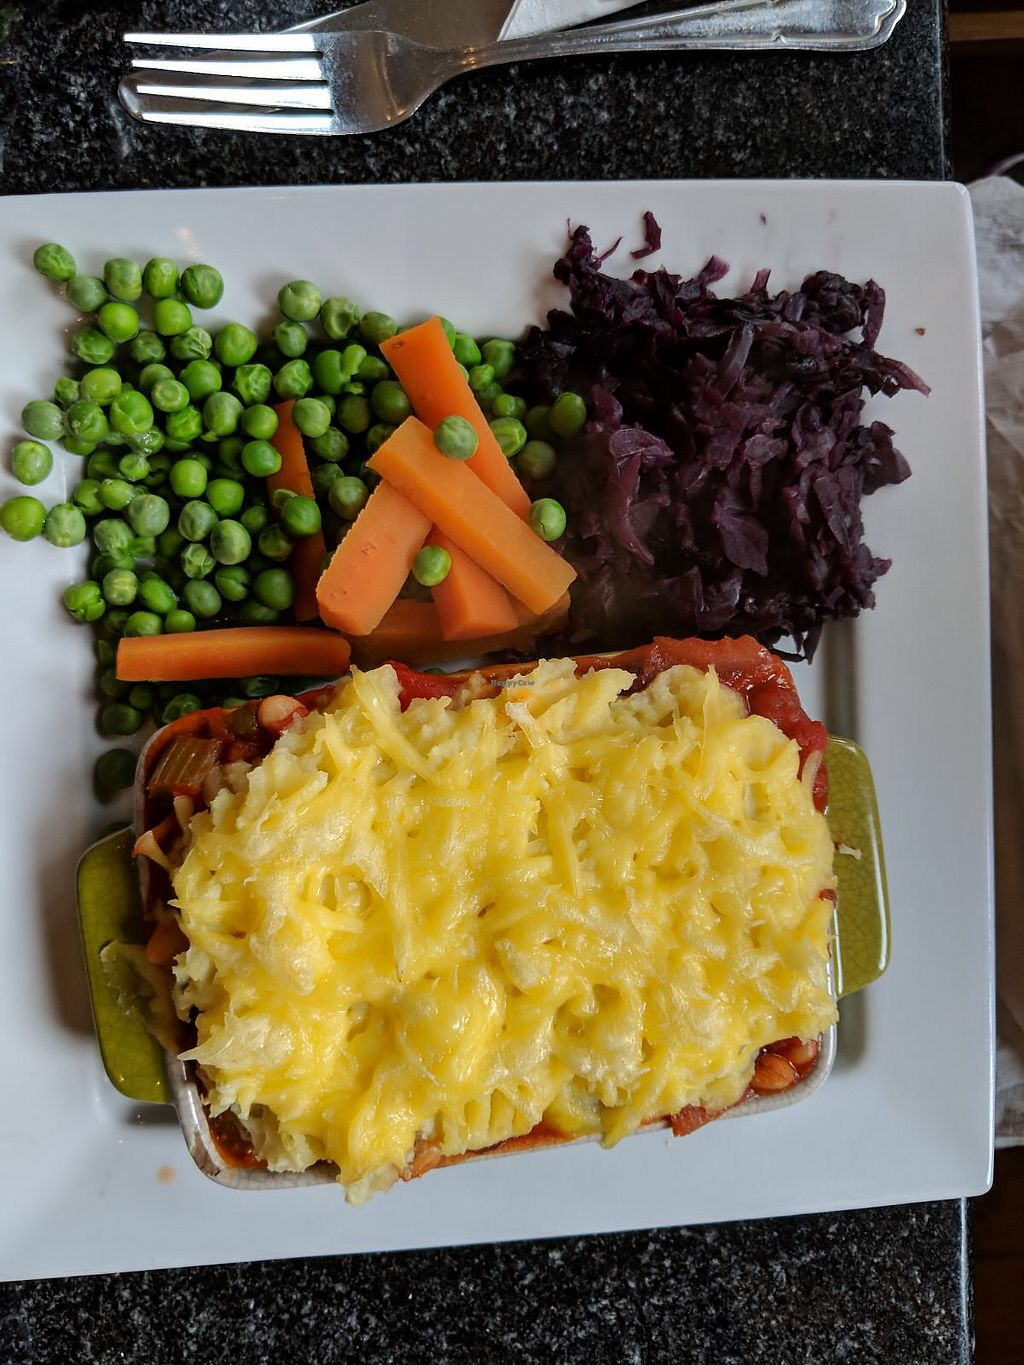 """Photo of Greens Cafe  by <a href=""""/members/profile/Geri%E2%80%99sBeanThere"""">Geri'sBeanThere</a> <br/>Vegan Shepherds Pie <br/> April 10, 2018  - <a href='/contact/abuse/image/32367/383385'>Report</a>"""